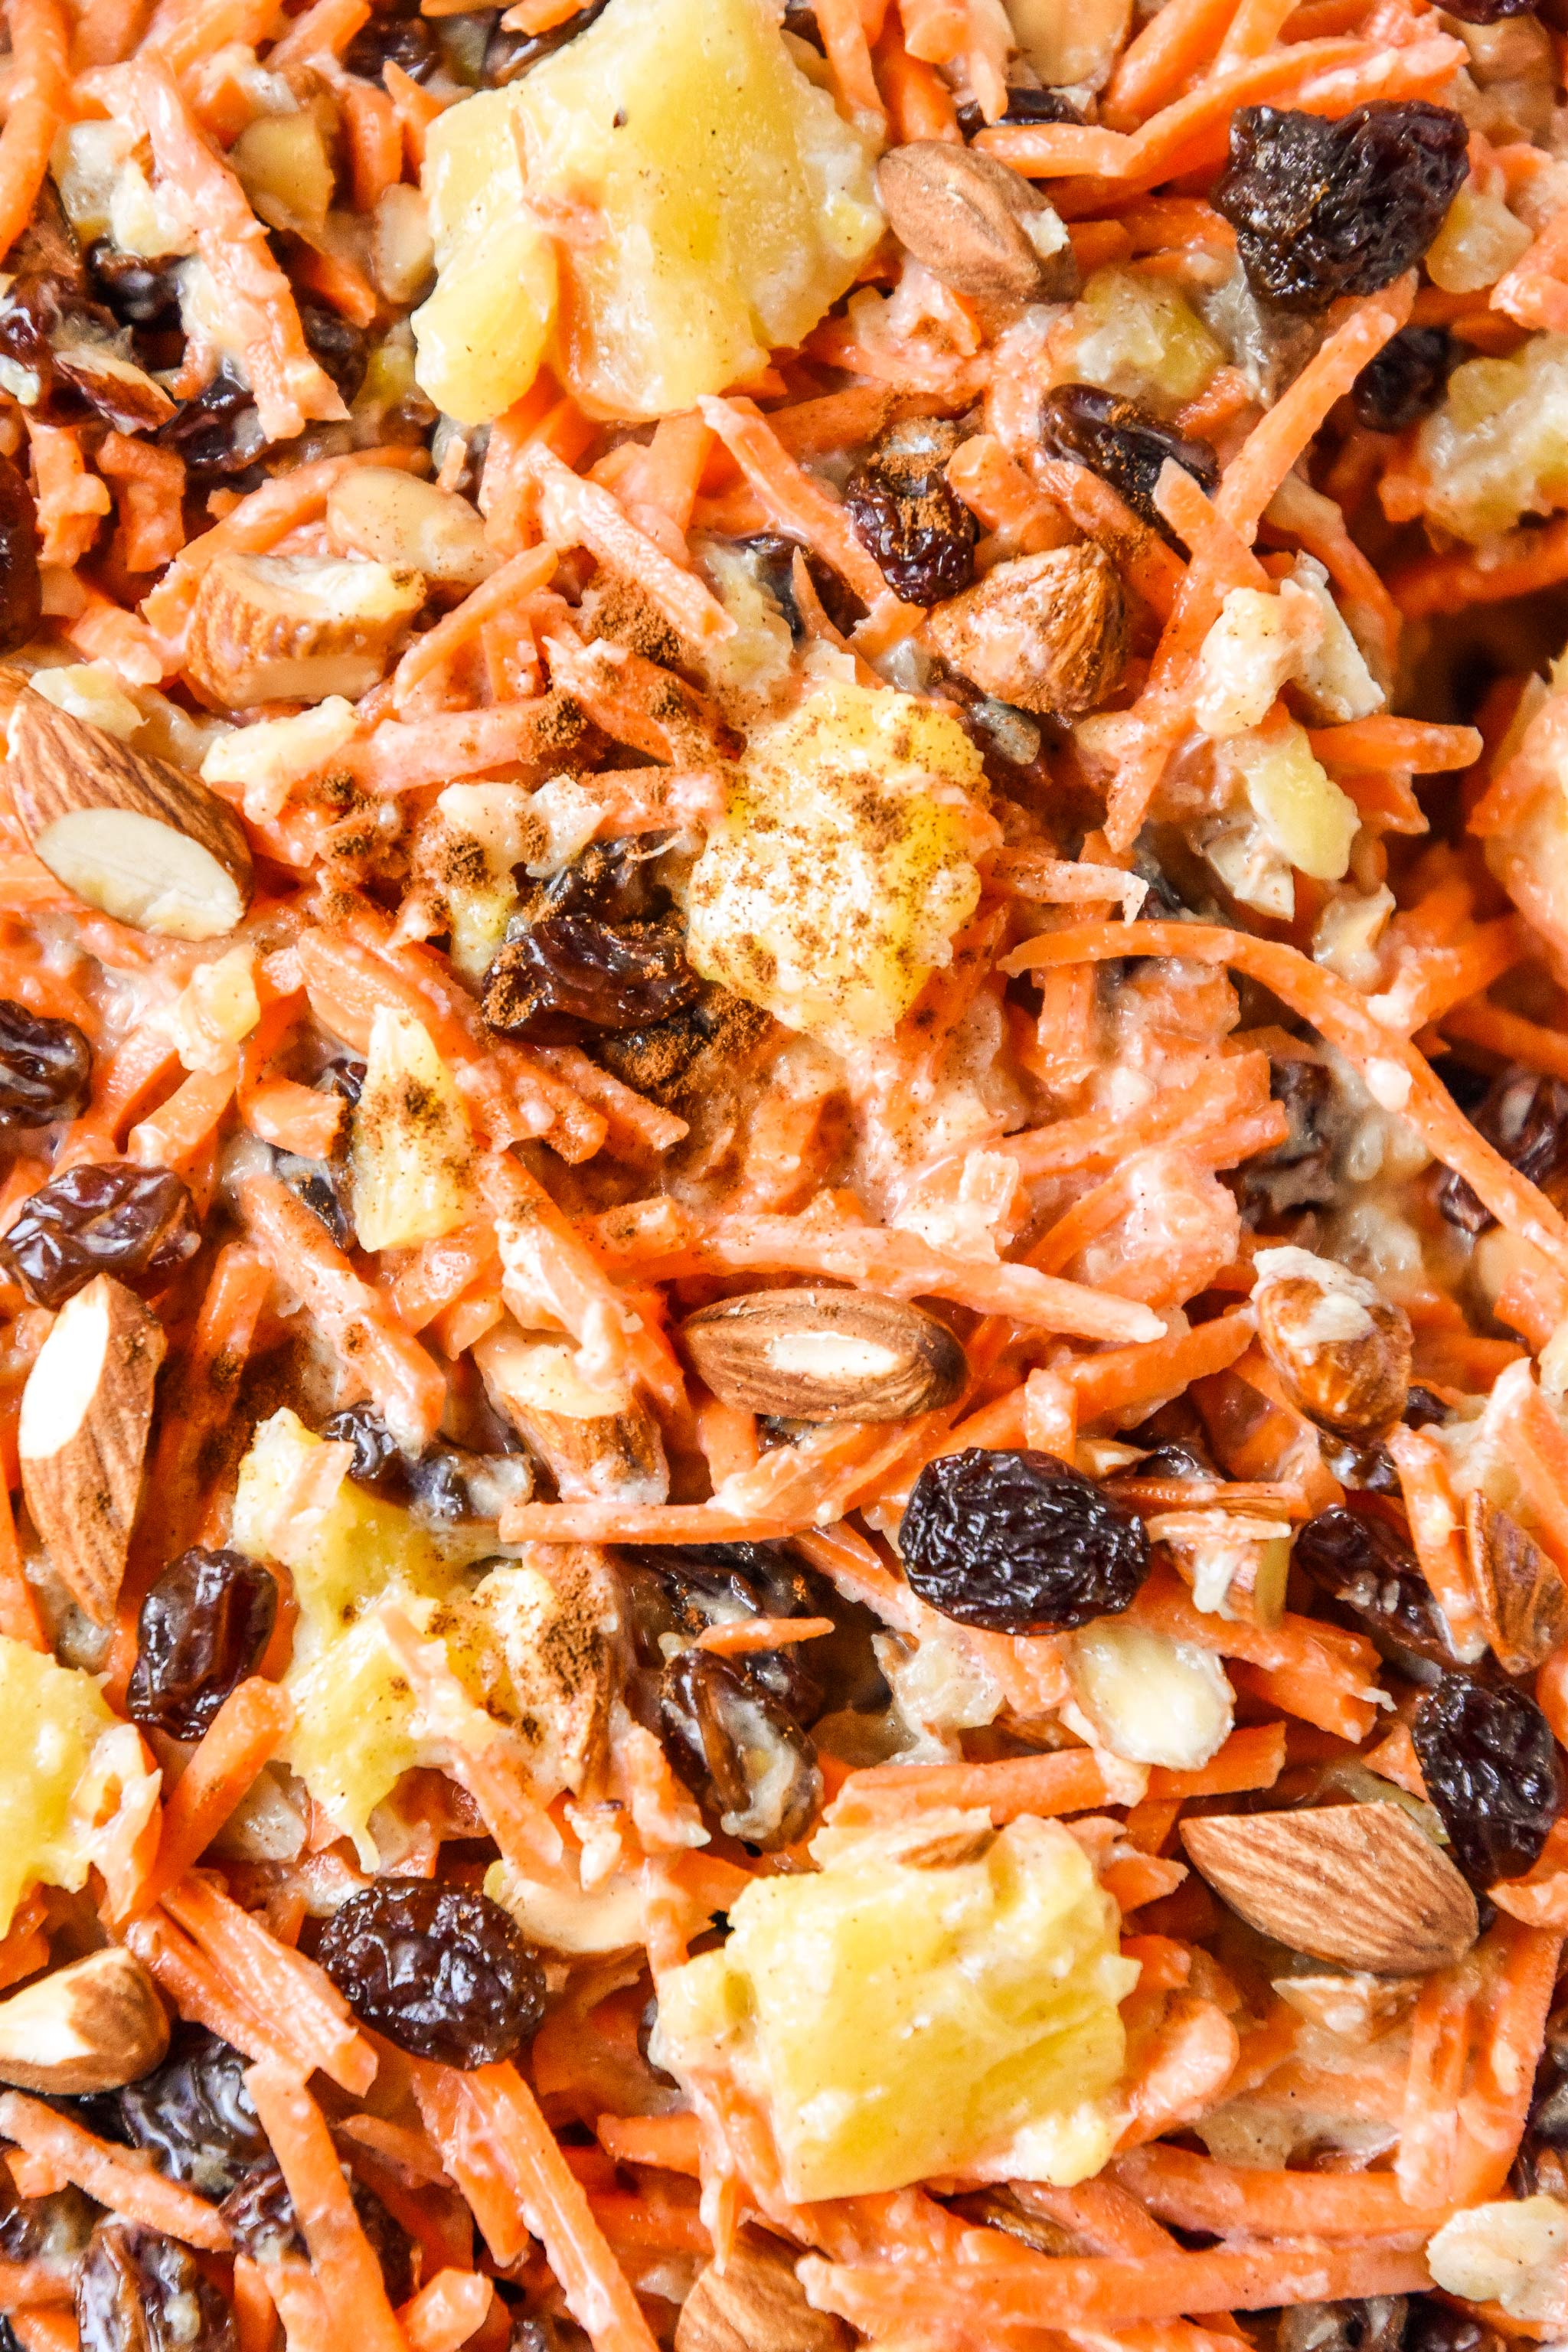 close up of the cinnamon raisin carrot salad in a bowl